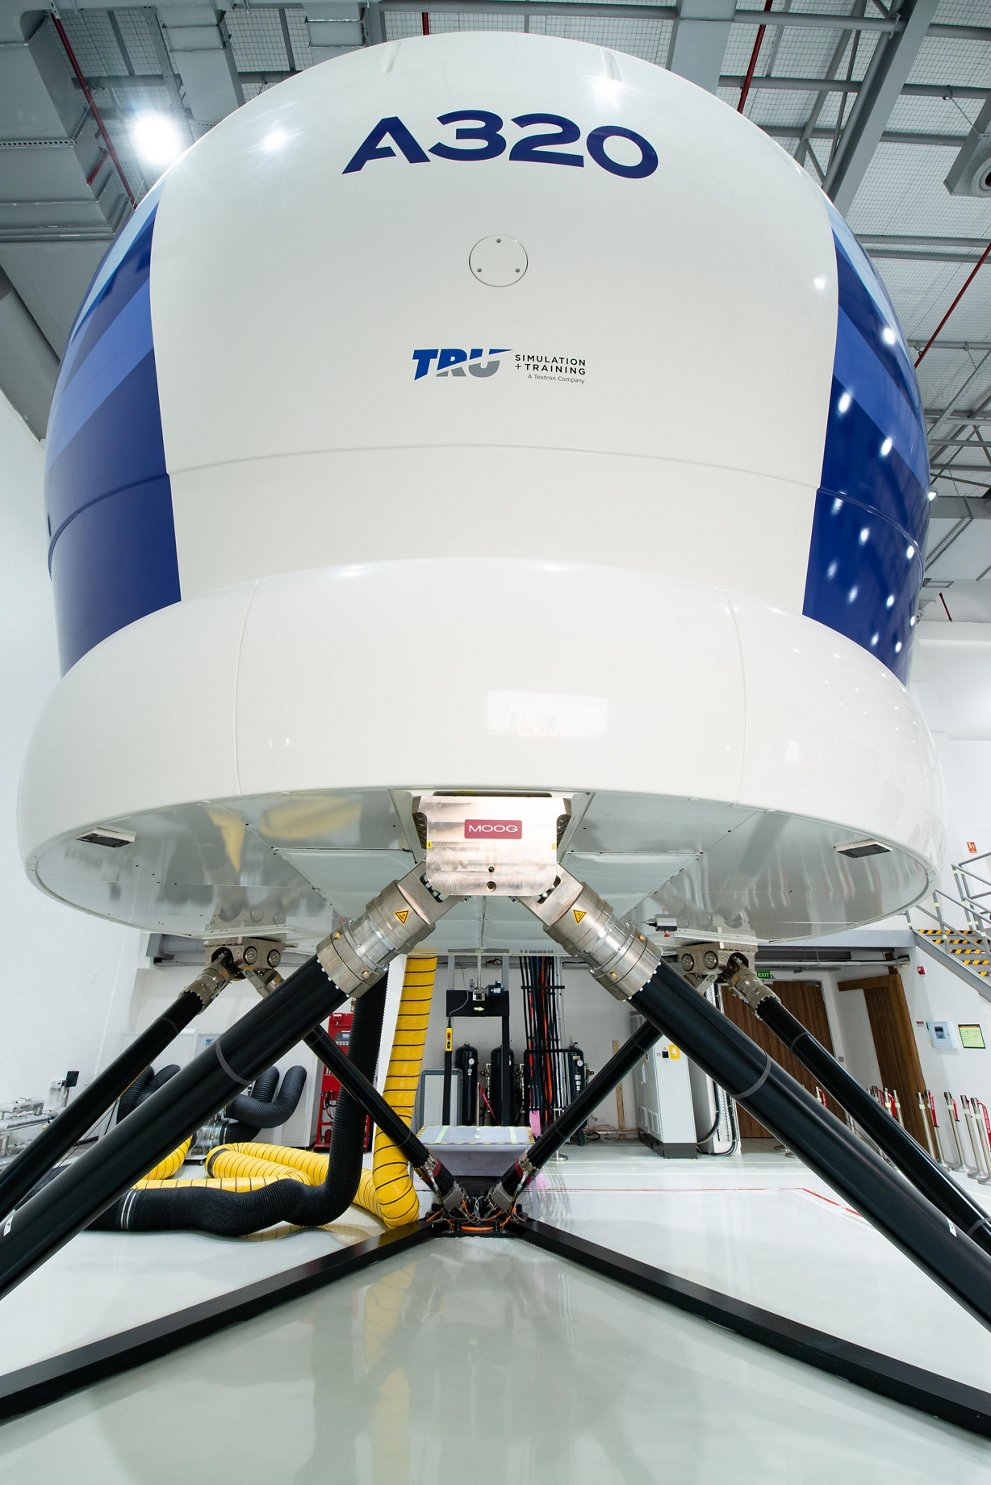 A320 Simulator At Airbus India Training Centre